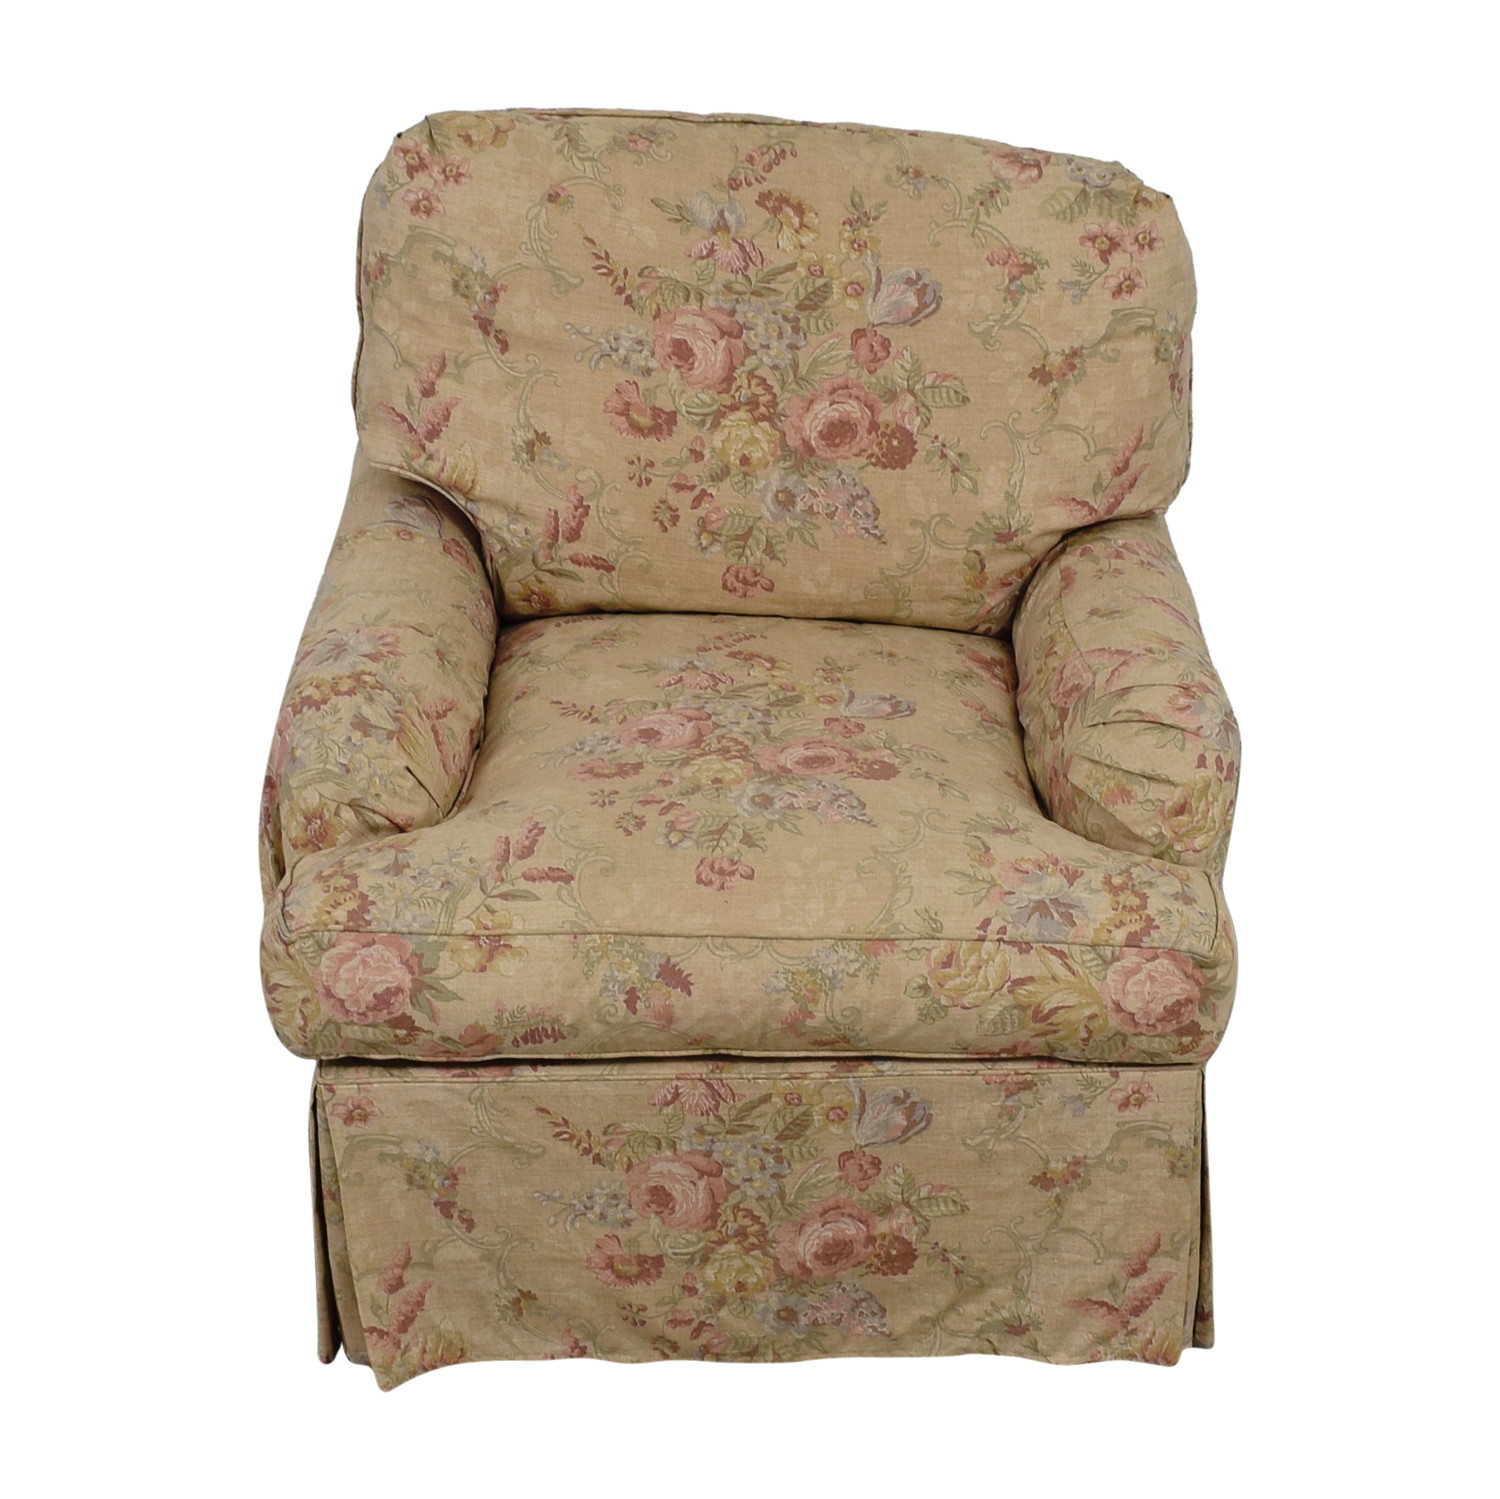 Best Floral Accent Chair Decoration Ideas